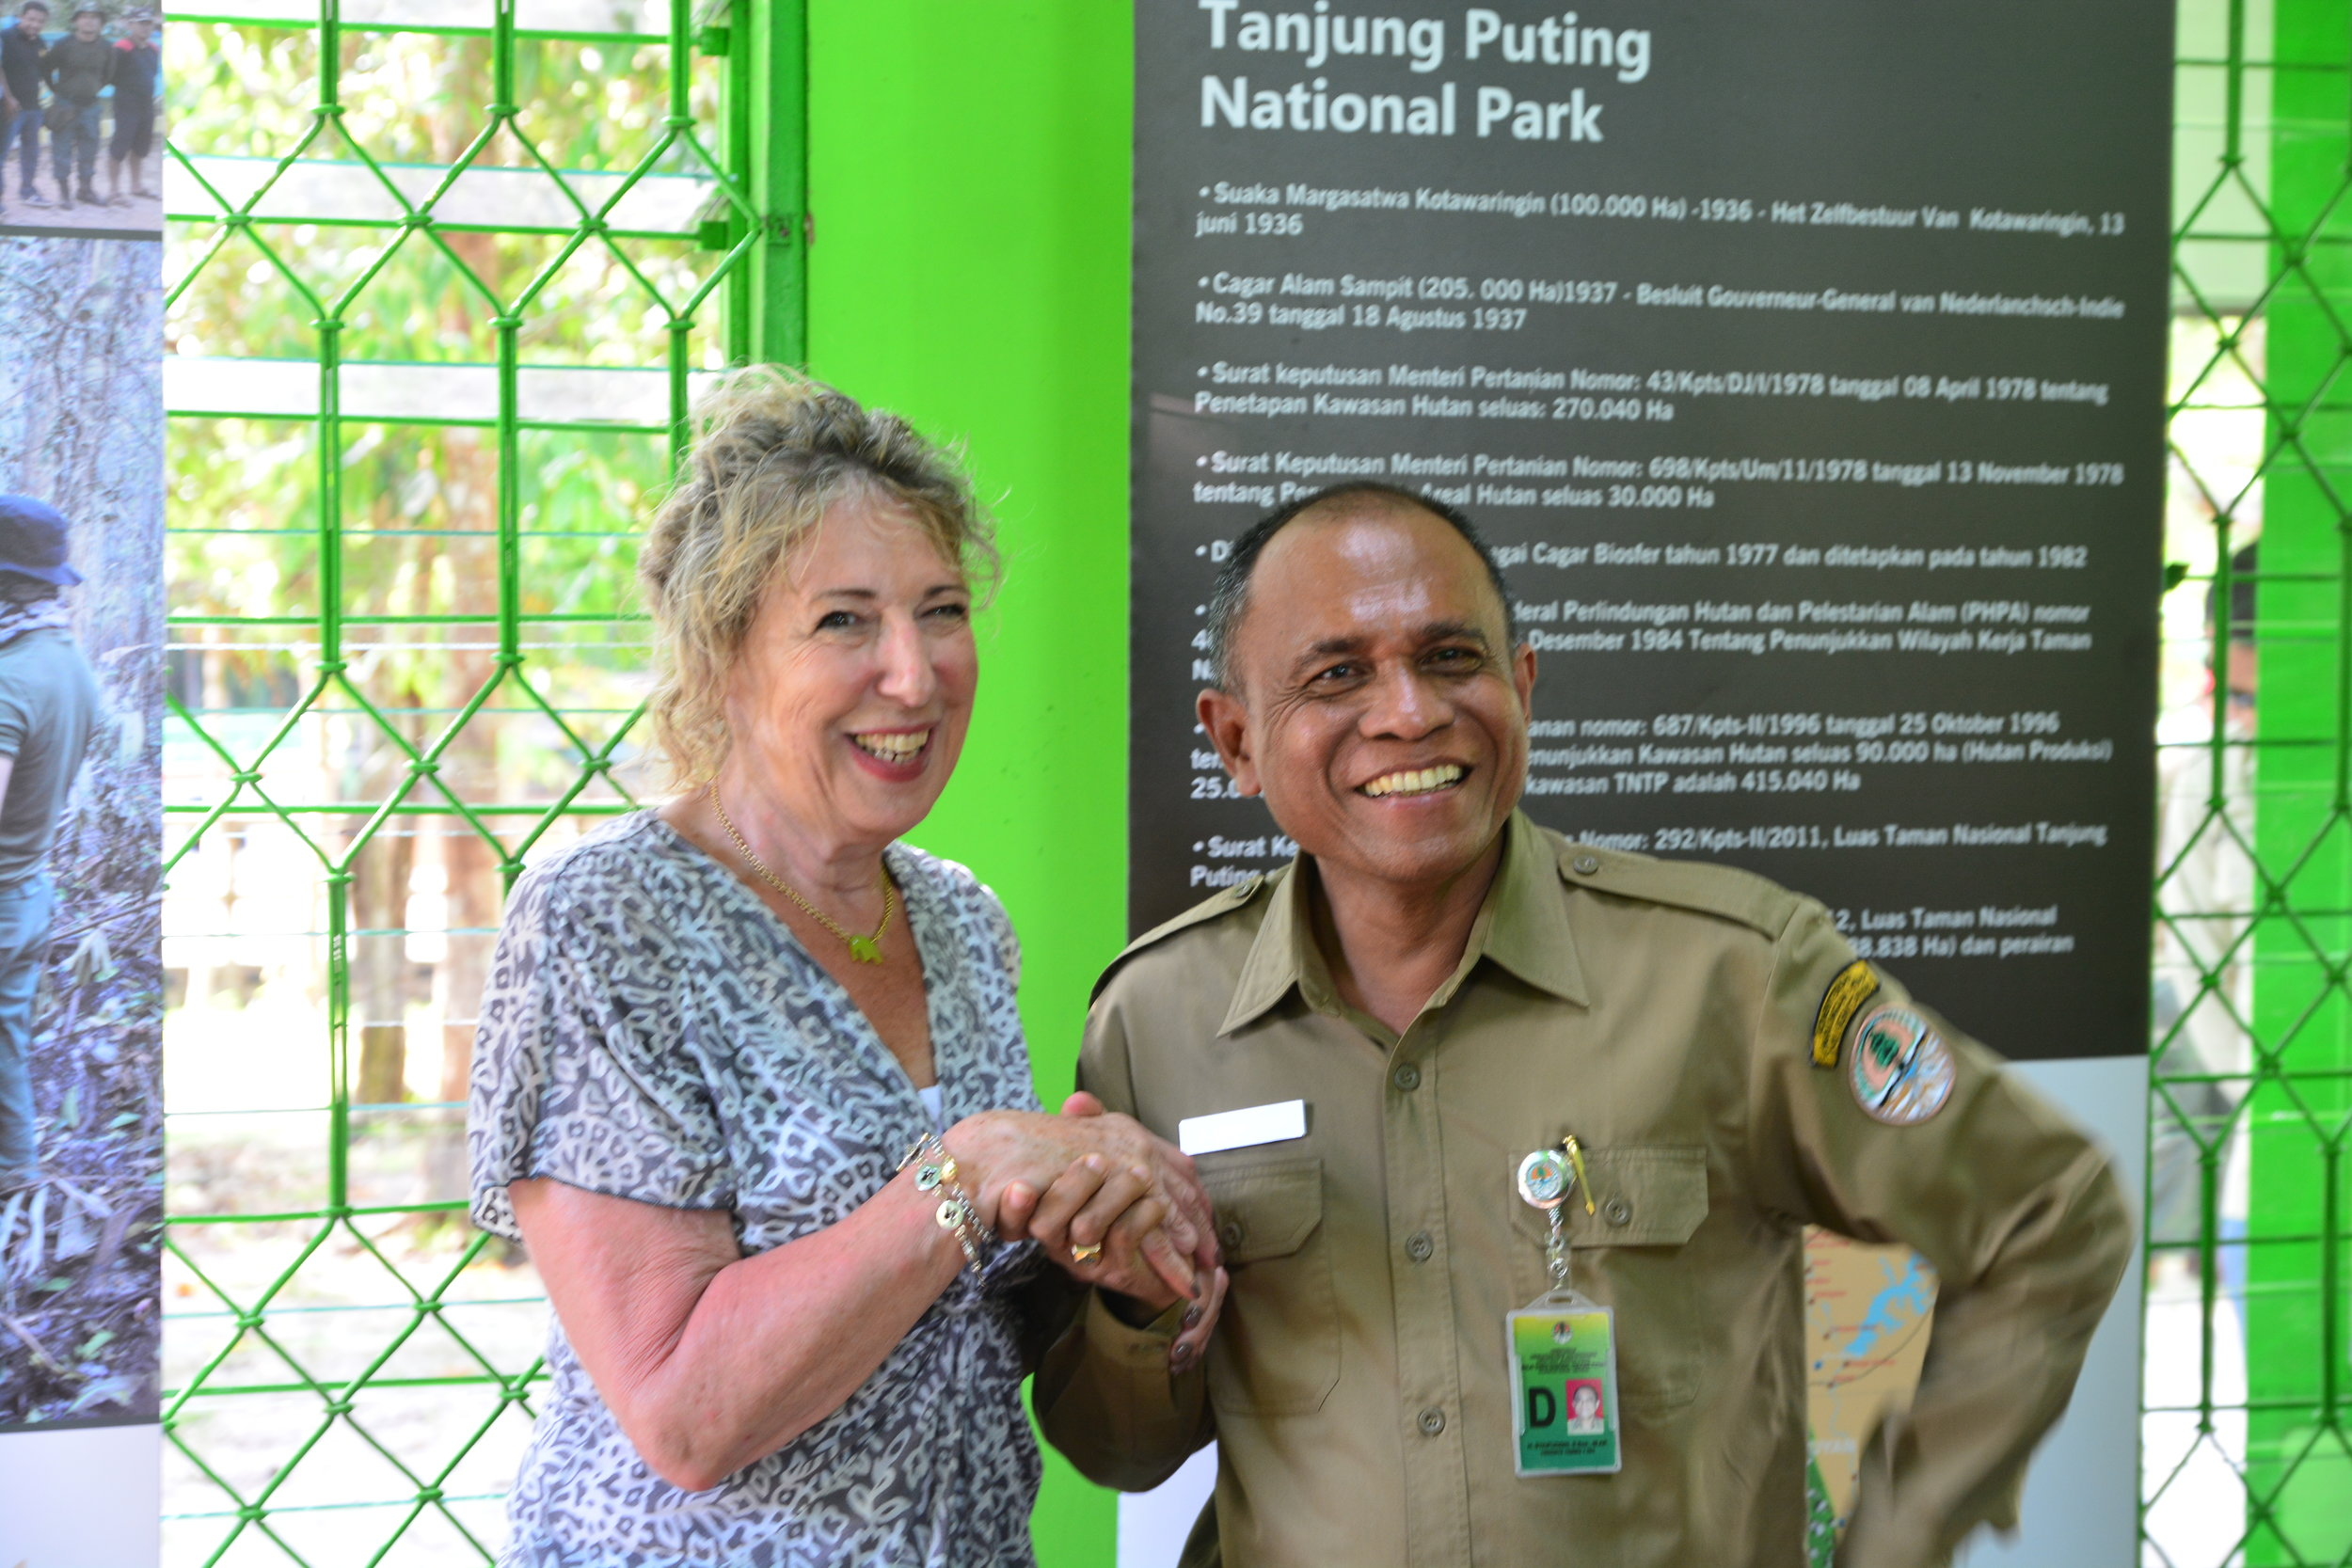 Orangutan Foundation Director Ashley Leiman with the administrative head of Tanjung Puting National Park.